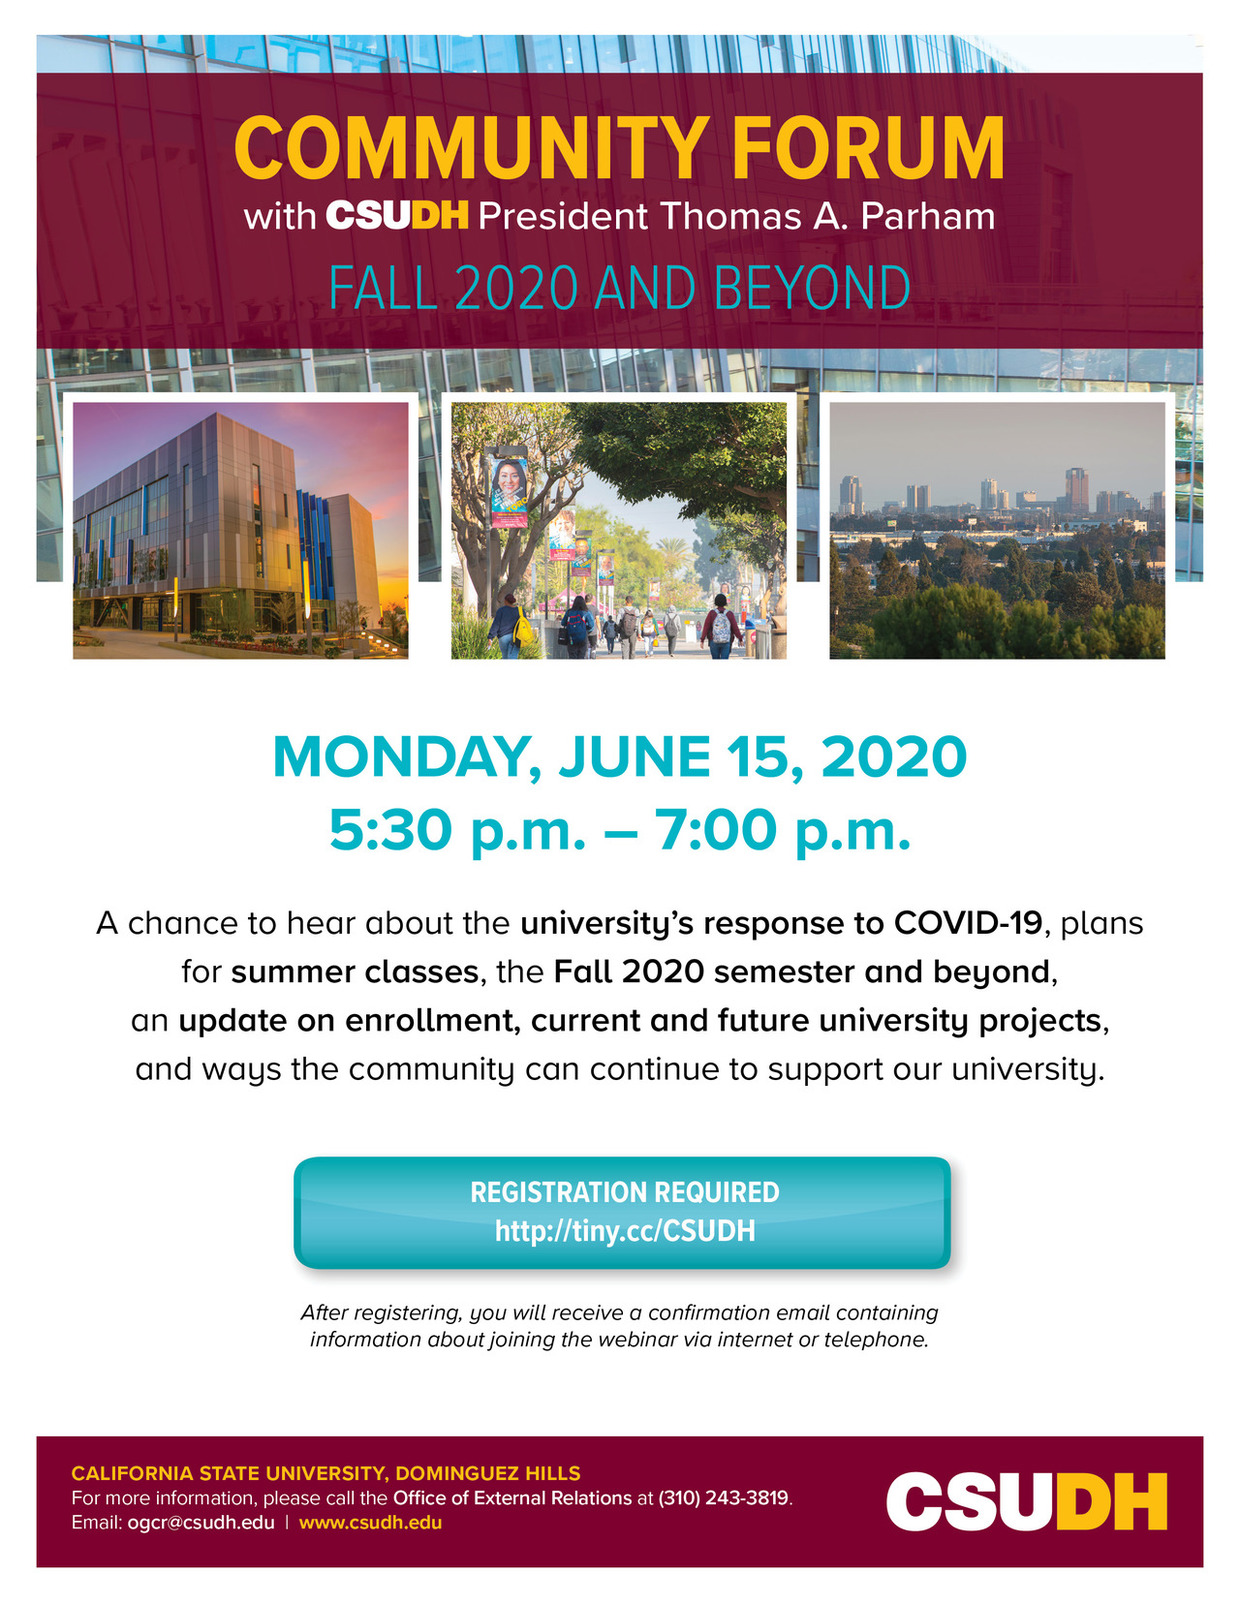 Register for Community Town Hall with CSUDH President Thomas A. Parham